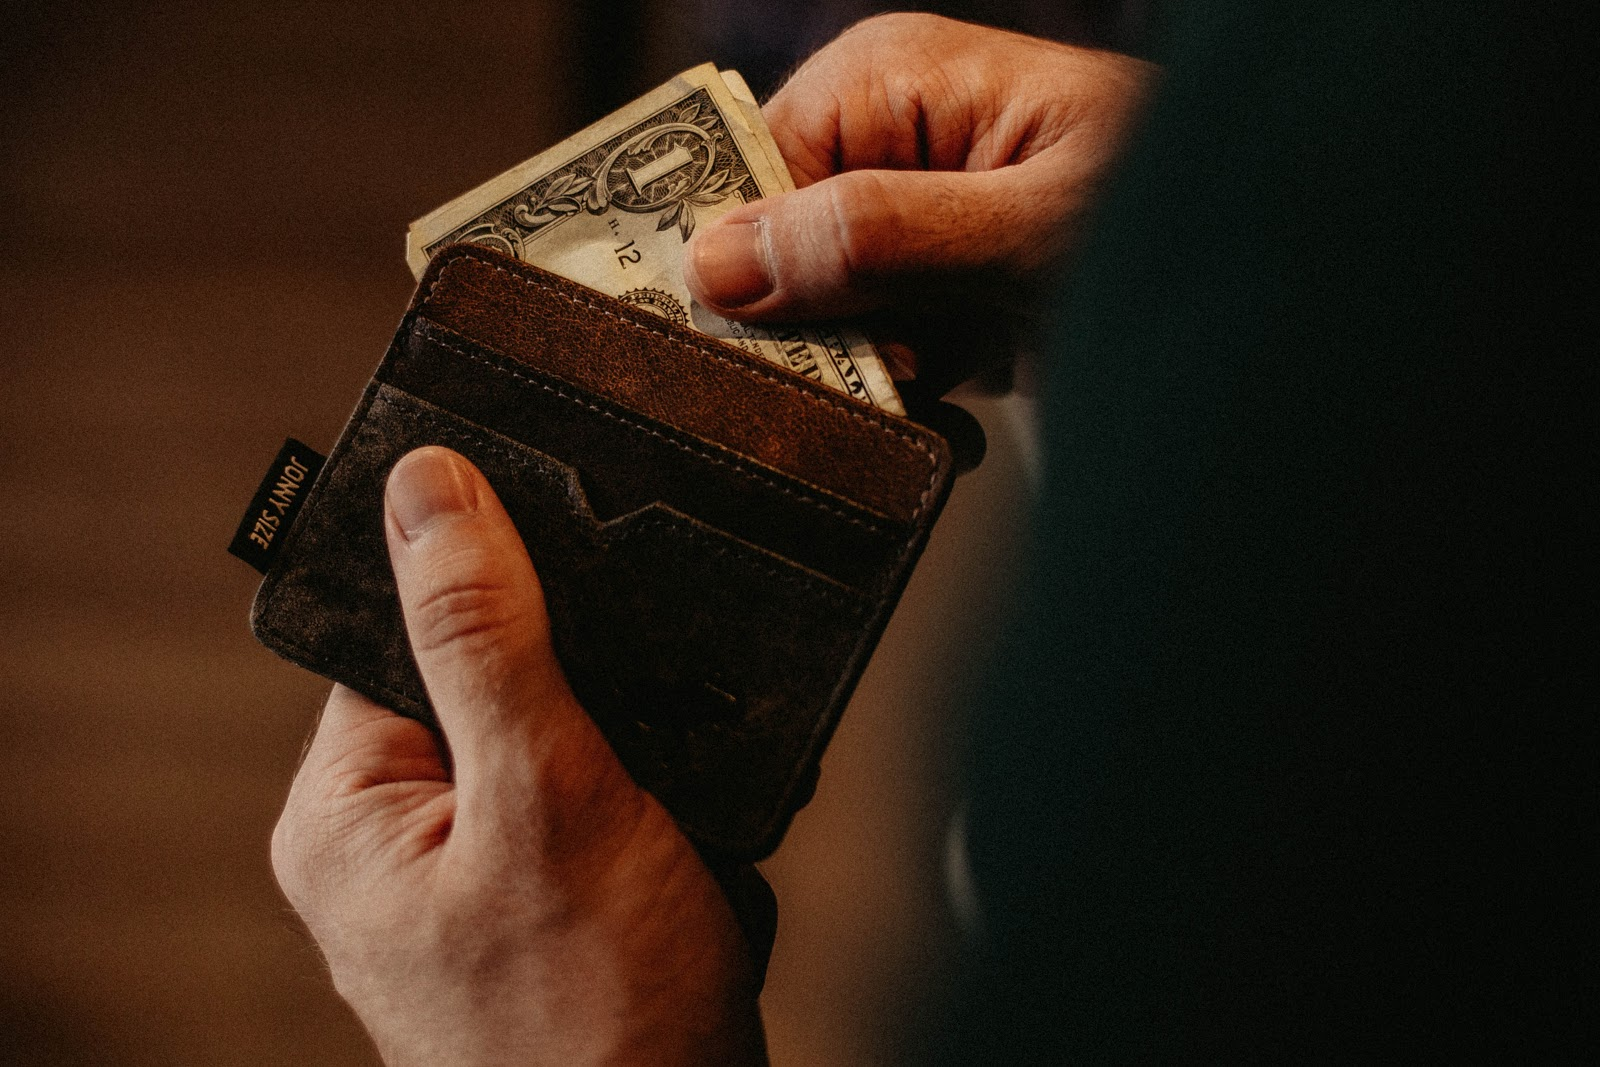 Person pulling money out of a wallet.